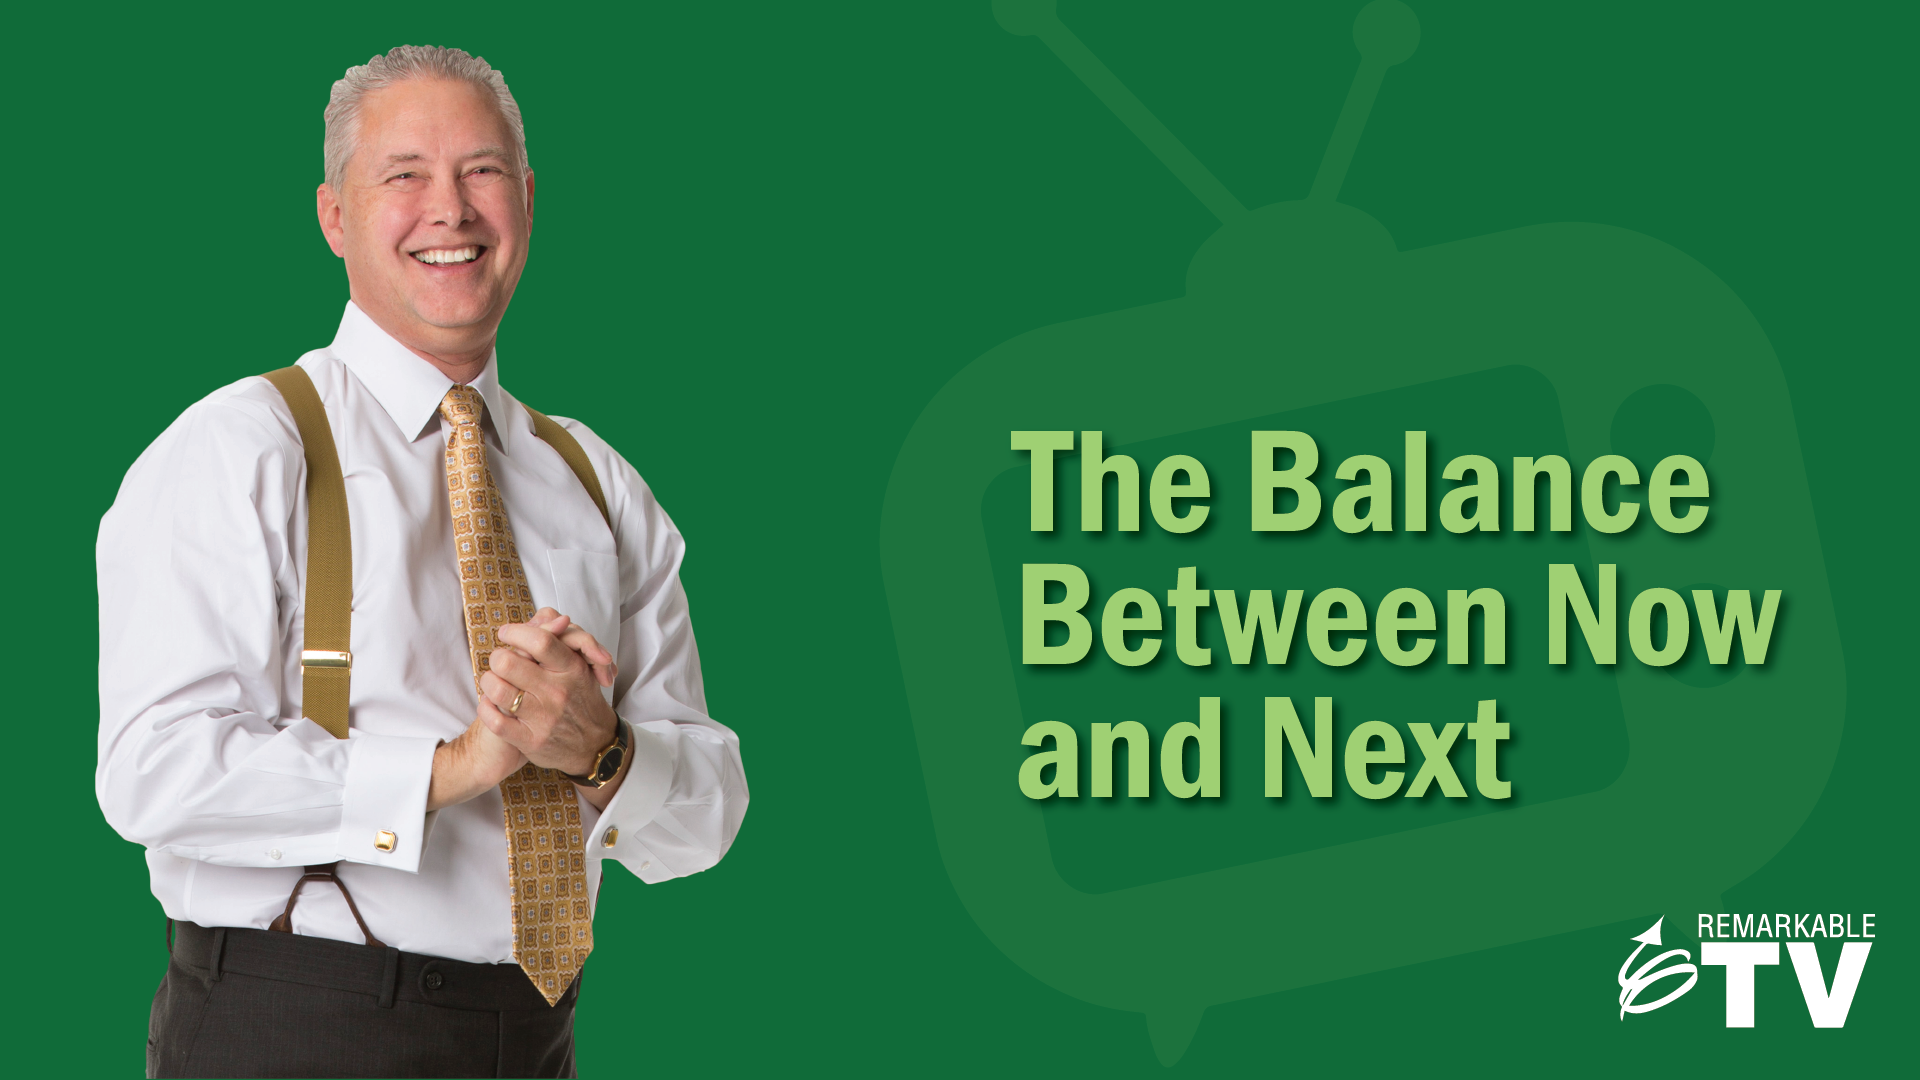 Video image for The Balance Between Now and Next episode of Remarkable TV with Kevin Eikenberry